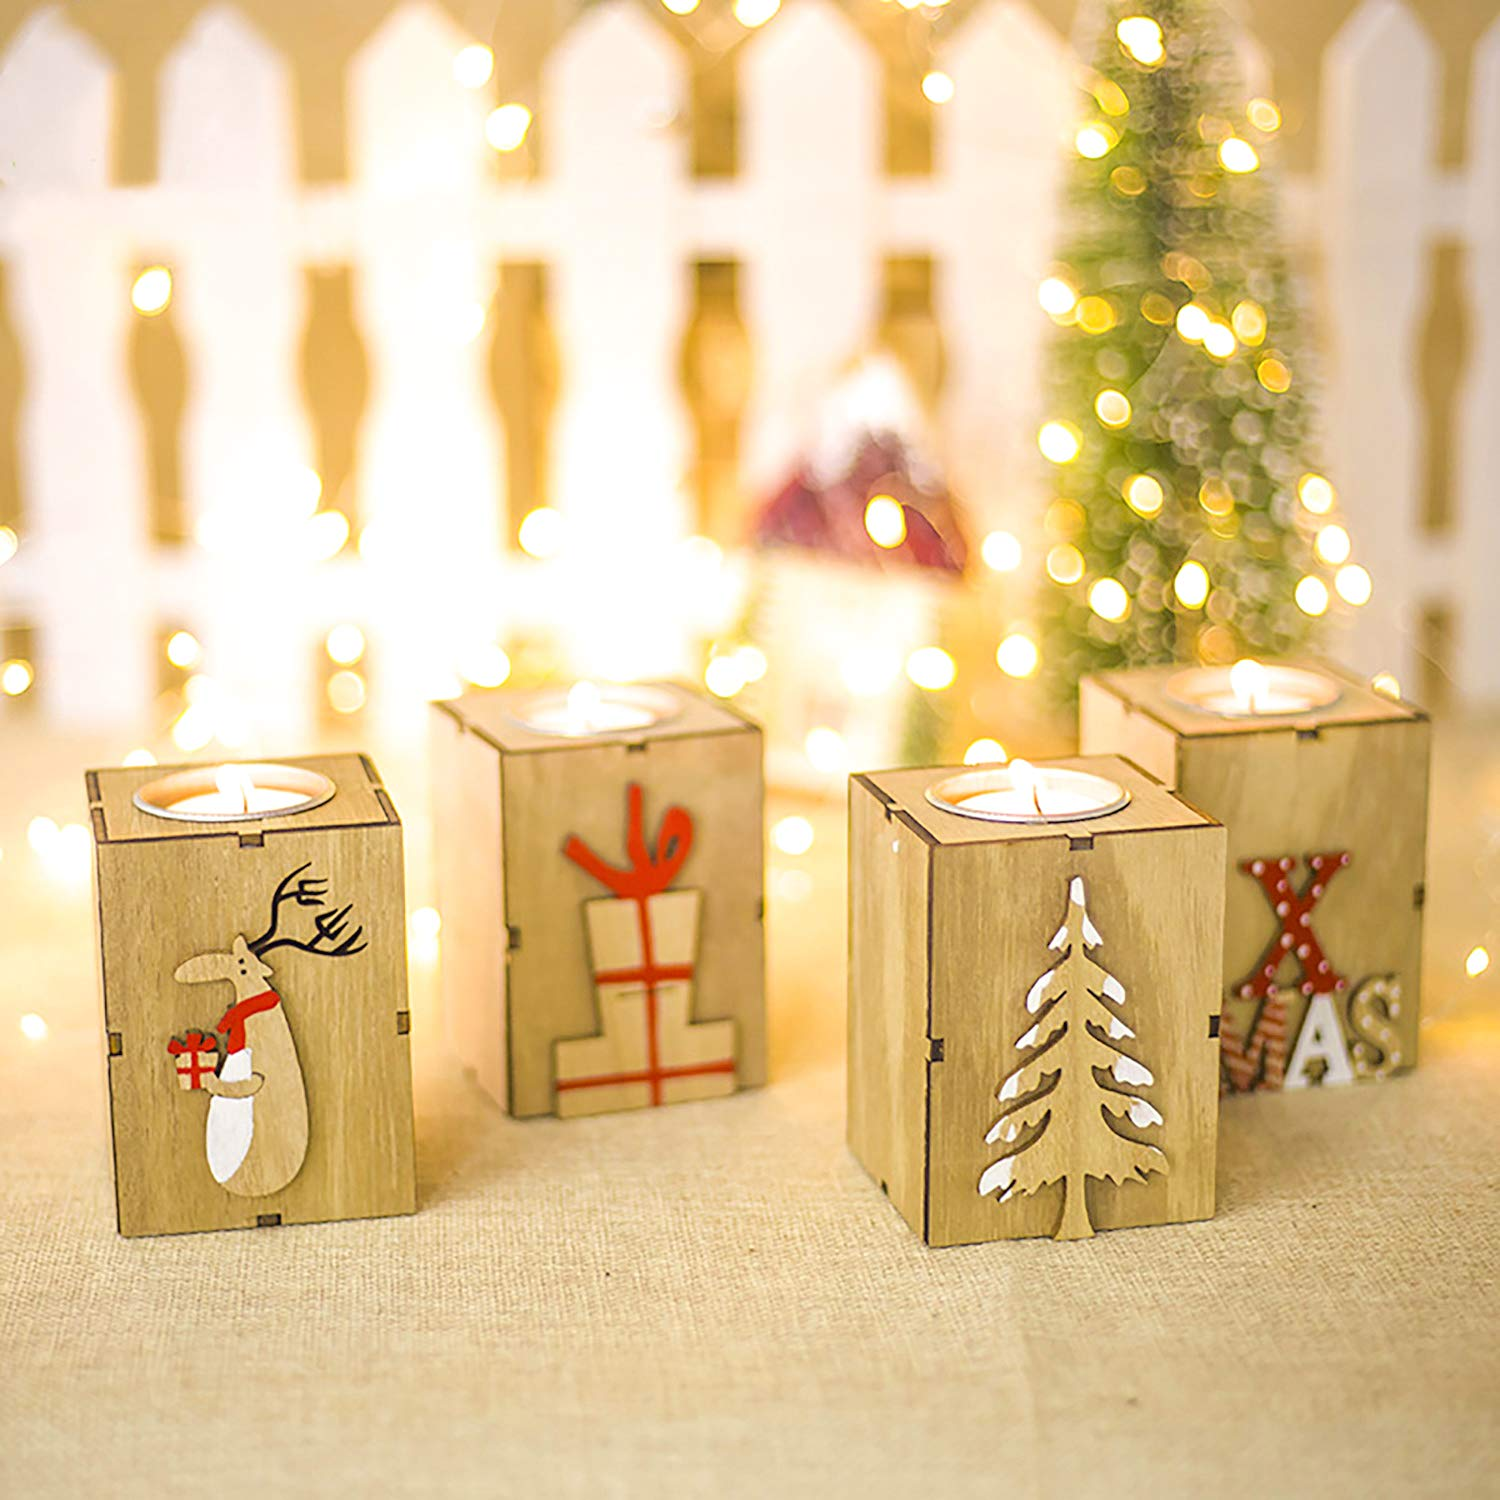 Amazing Home Wooden Tealight Candle Holders Set of 4, 3.5 inches Height Centerpieces for Christmas Wedding Home Decor